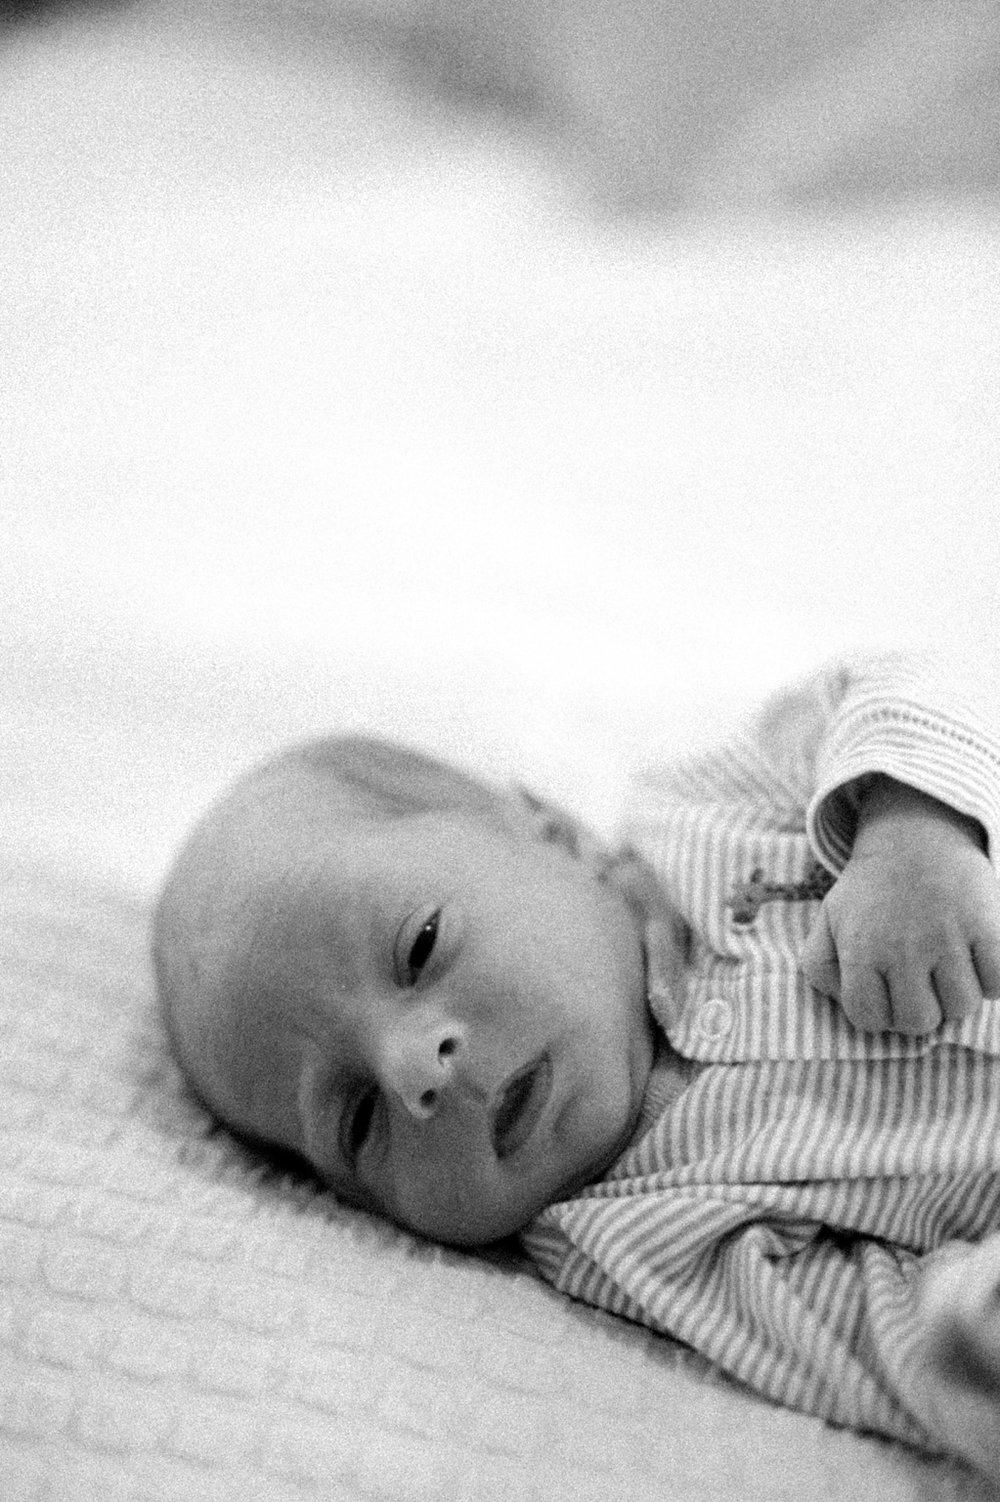 virginia_newborn_lifestyle_photography_fine_art_film_0013.jpg